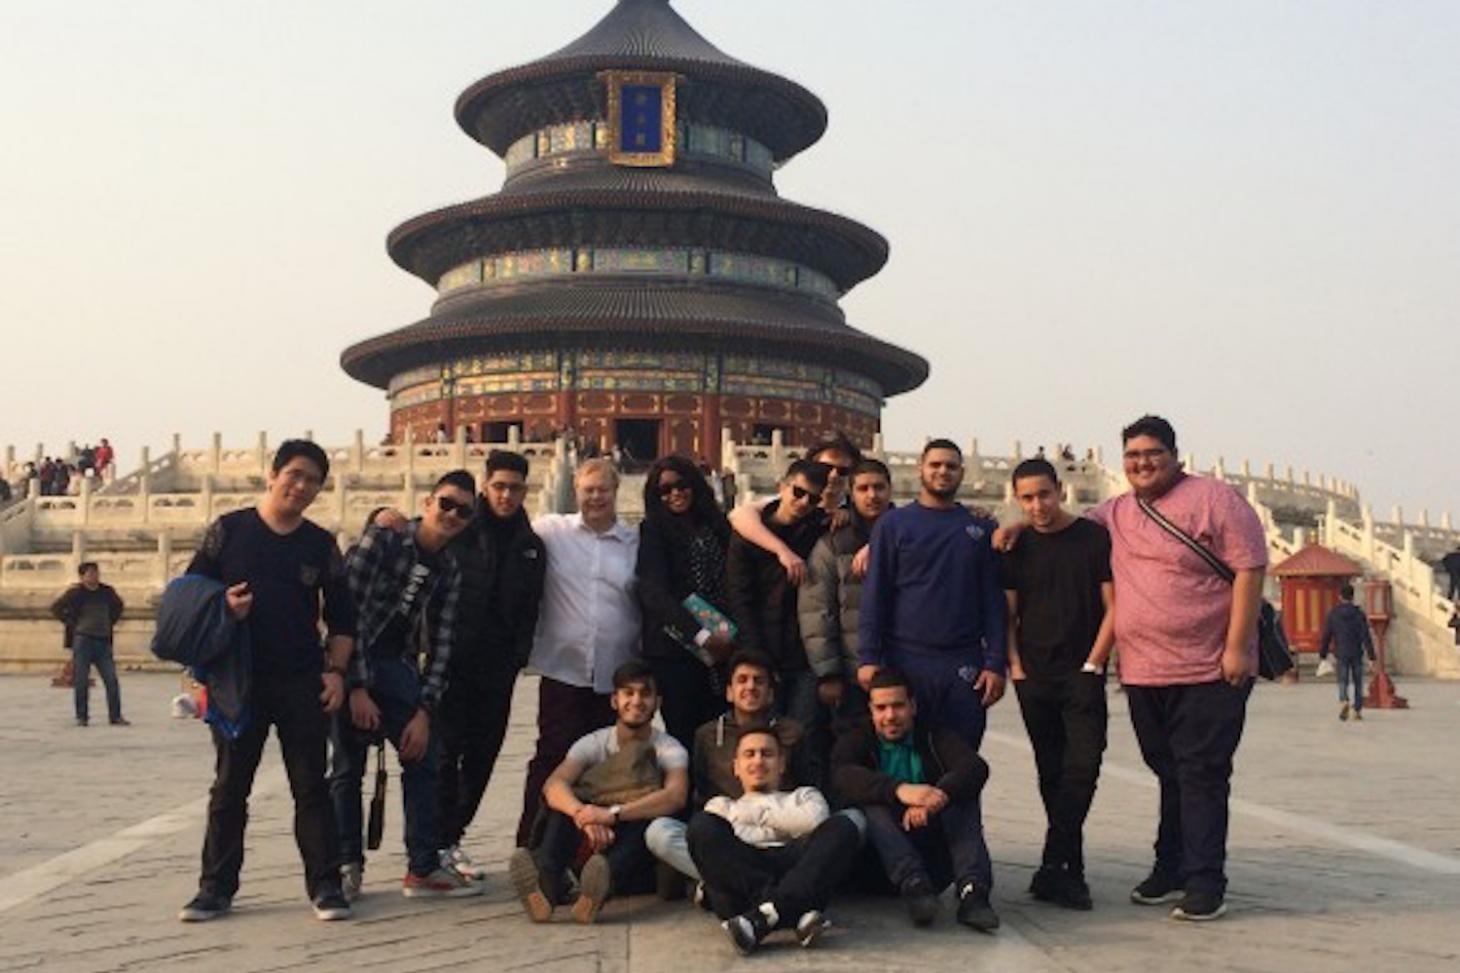 Visiting the Temple of Heaven